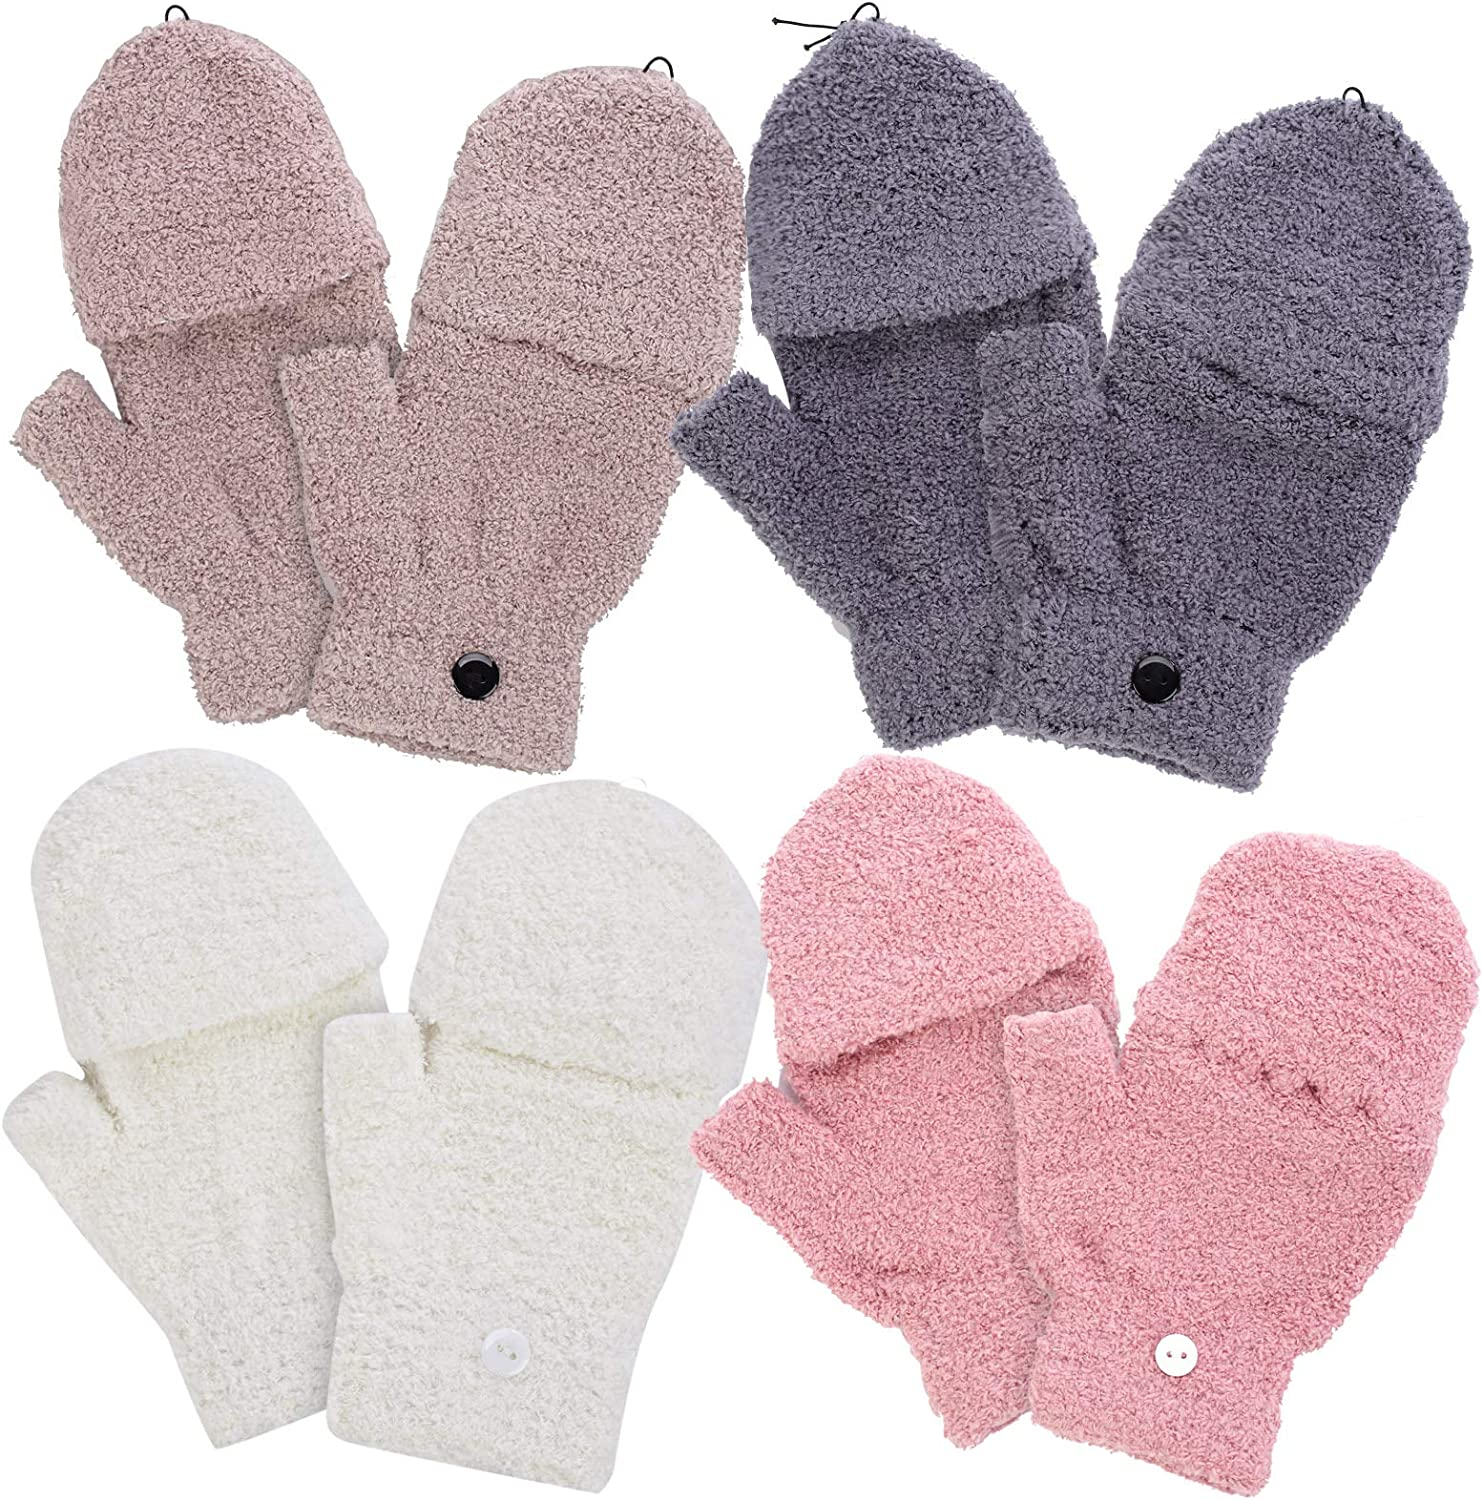 4 Pairs Coral Velvet Half Finger Gloves- 4 Colors Knitted Convertible Fingerless Gloves Mittens Thickened Stretchy Winter Warm Mittens in Common Size for Women and Men (Khaki, Gray, Pink, Beige)